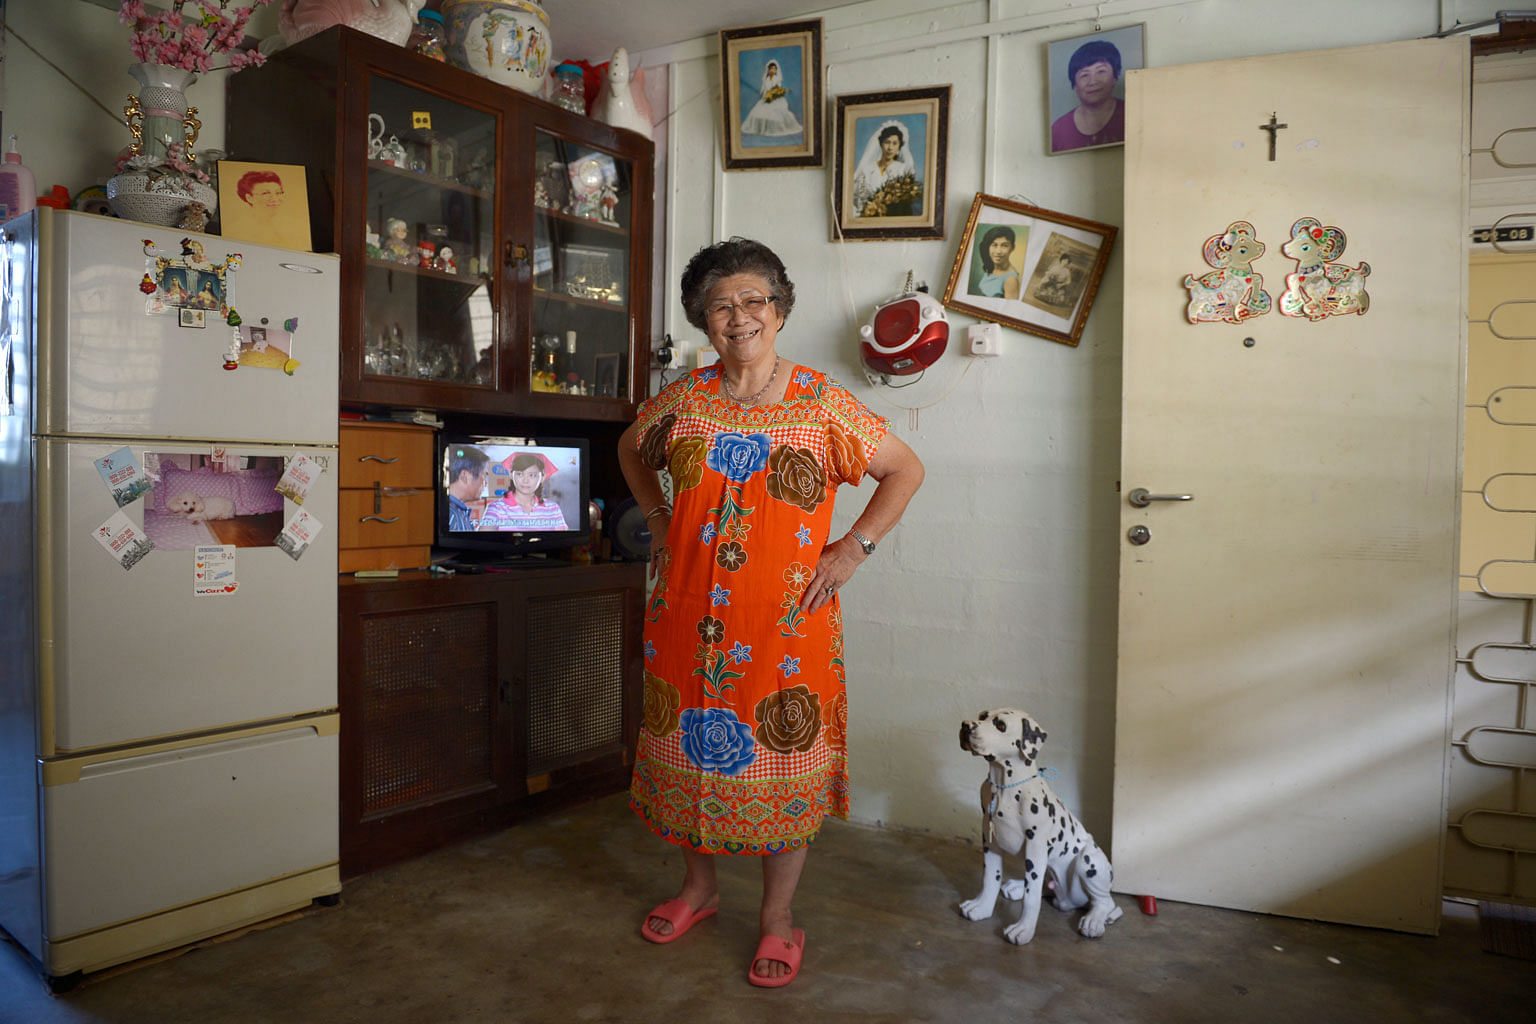 Madam Yee Dew Eng, 77, a 36-year resident of Dakota Crescent. The sprightly cleaner, who lives alone, loves dogs and once lugged home a heavy dalmatian sculpture that she saw discarded by the road in Katong.